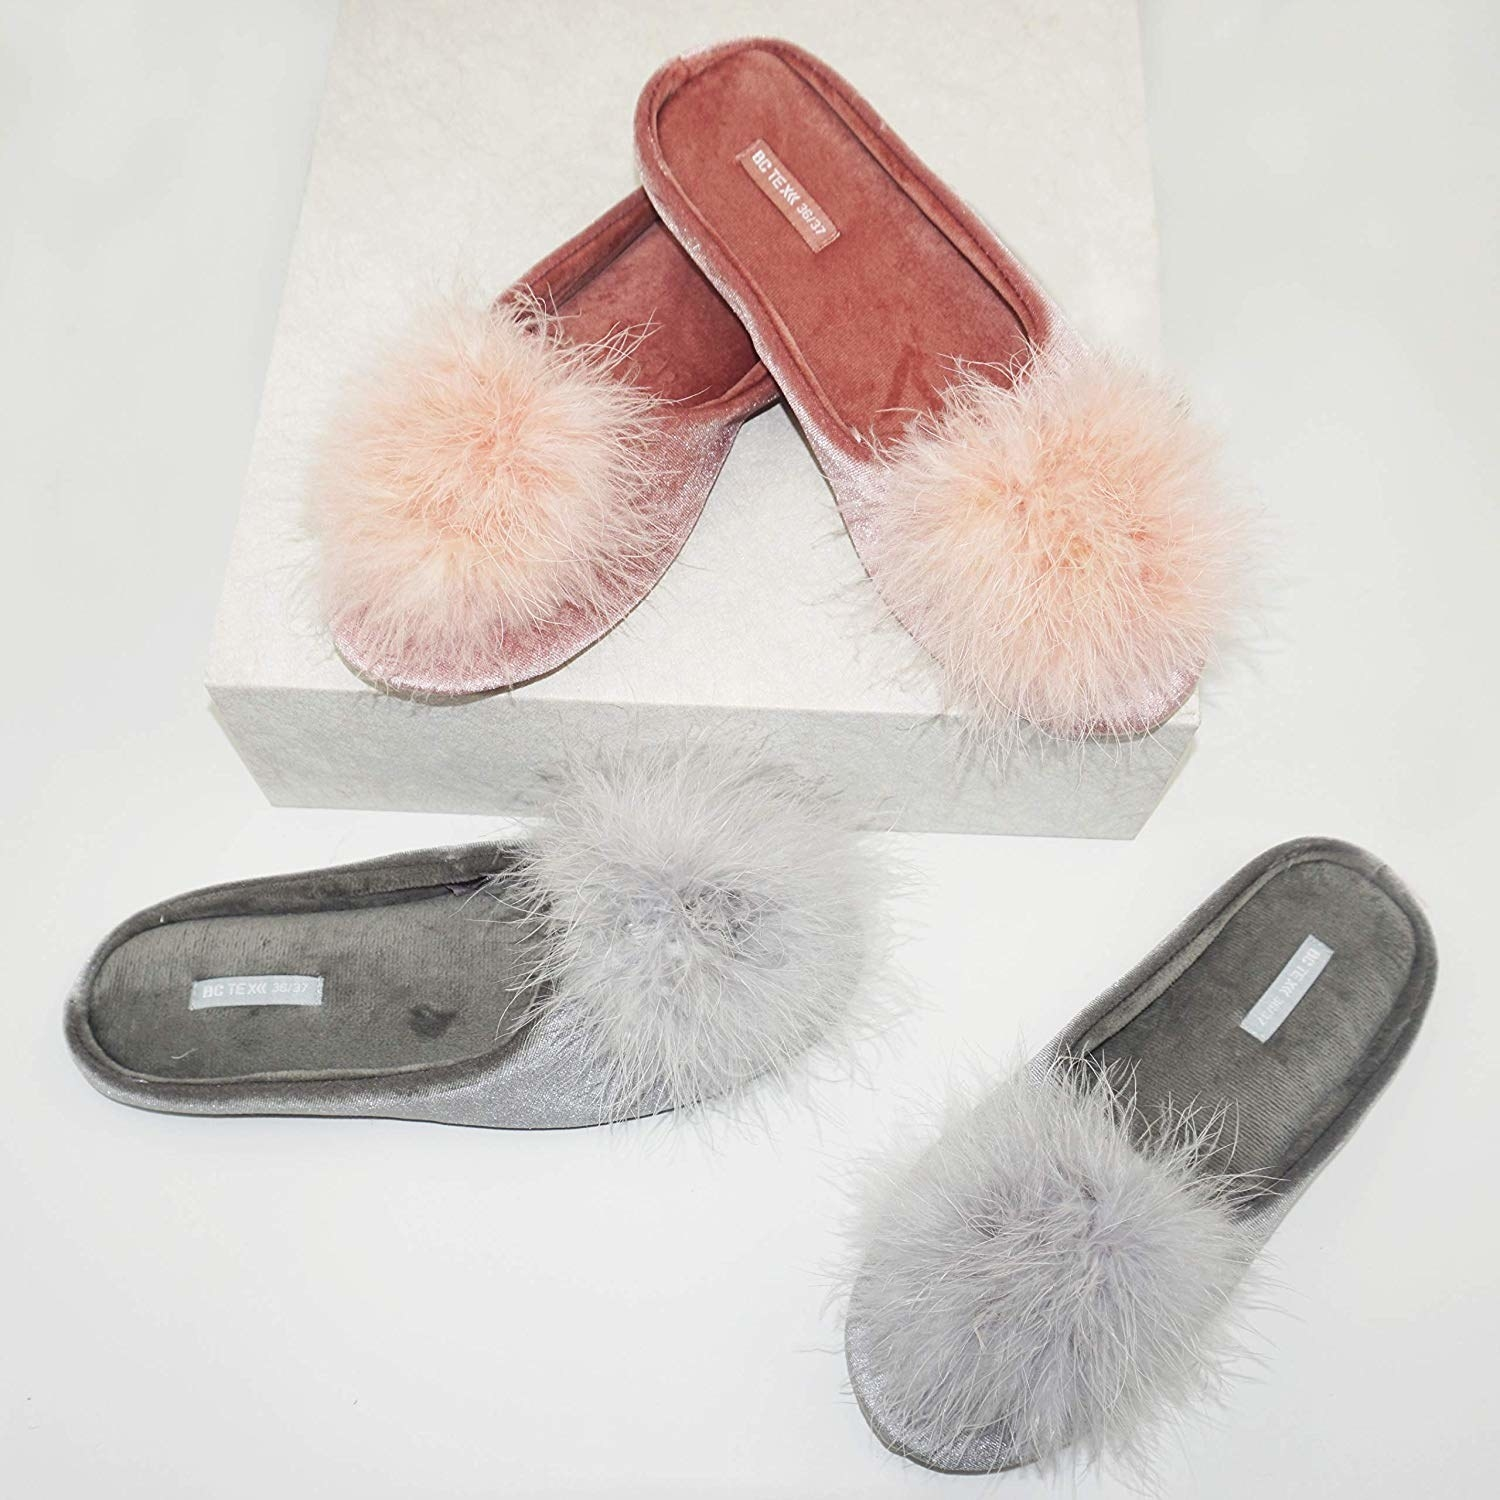 The slippers in blush pink and grey